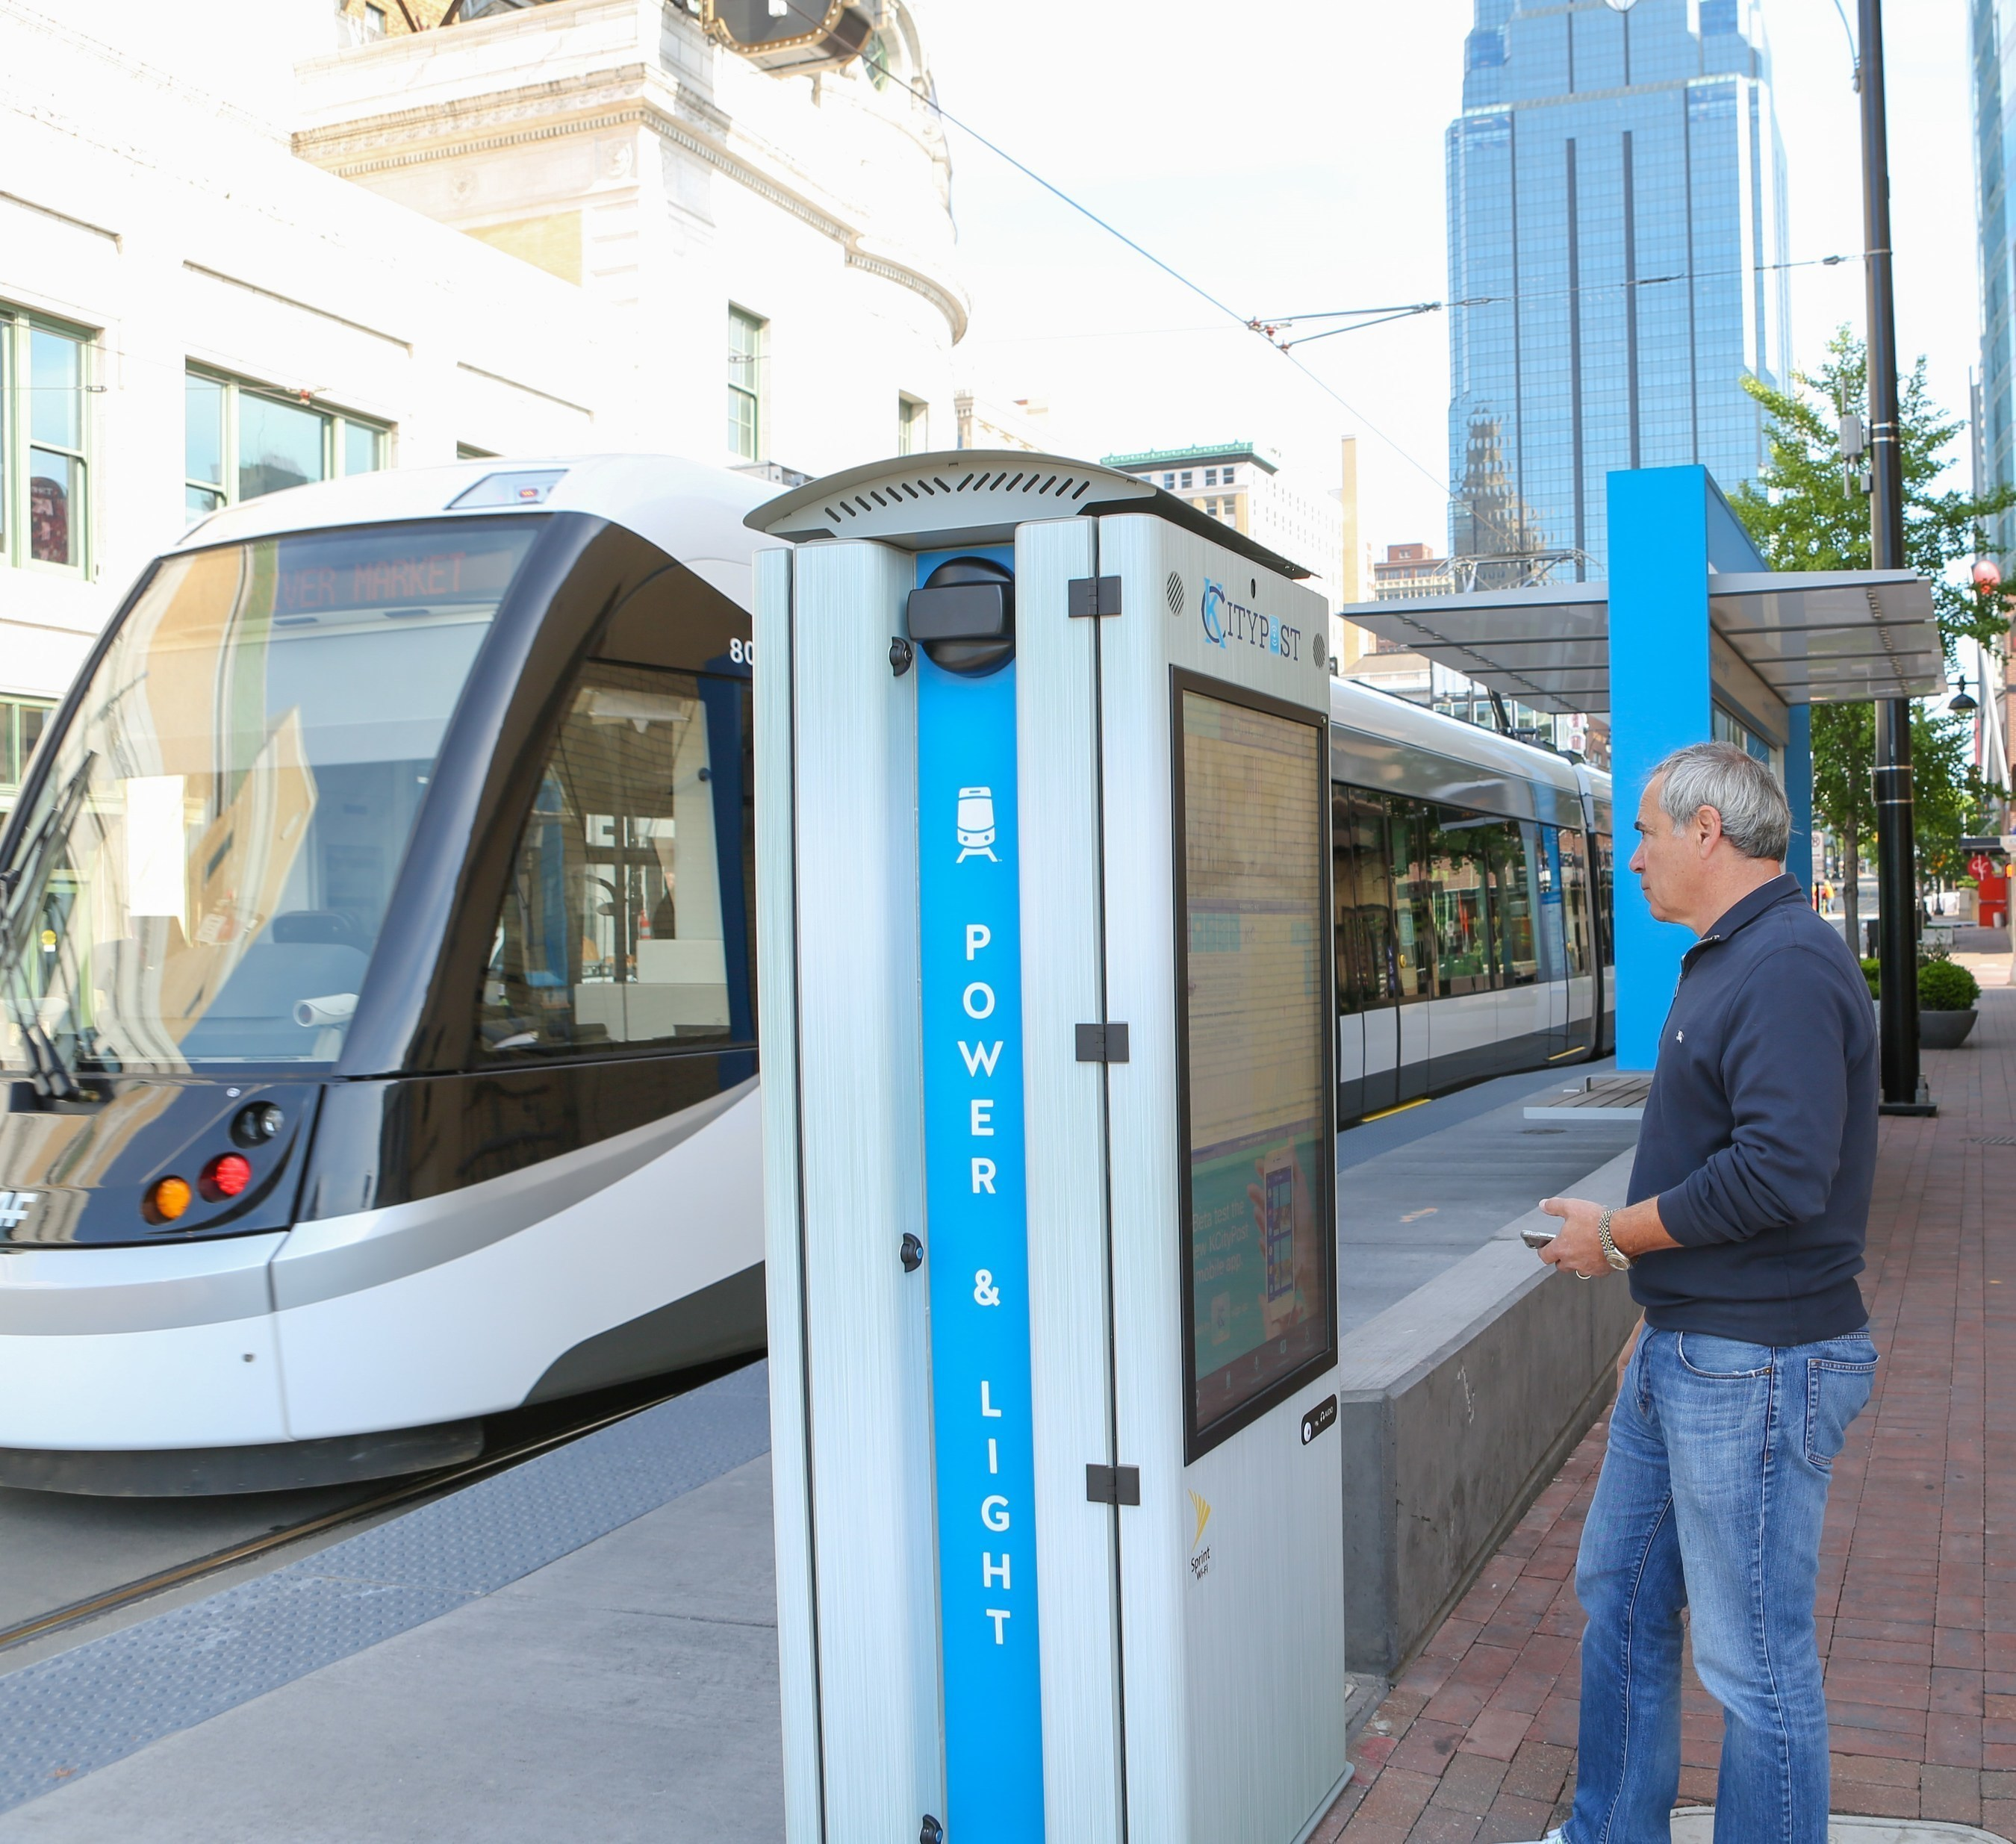 """Kansas City's """"Smart City"""" rollout includes free outdoor public Wi-Fi downtown, 125 """"smart"""" streetlights and 25 interactive kiosks to engage citizens - along a new two-mile stretch of the KC Streetcar line. http://kcmo.gov/smartcity/ Photo Credit: Kansas City Area Development Council"""